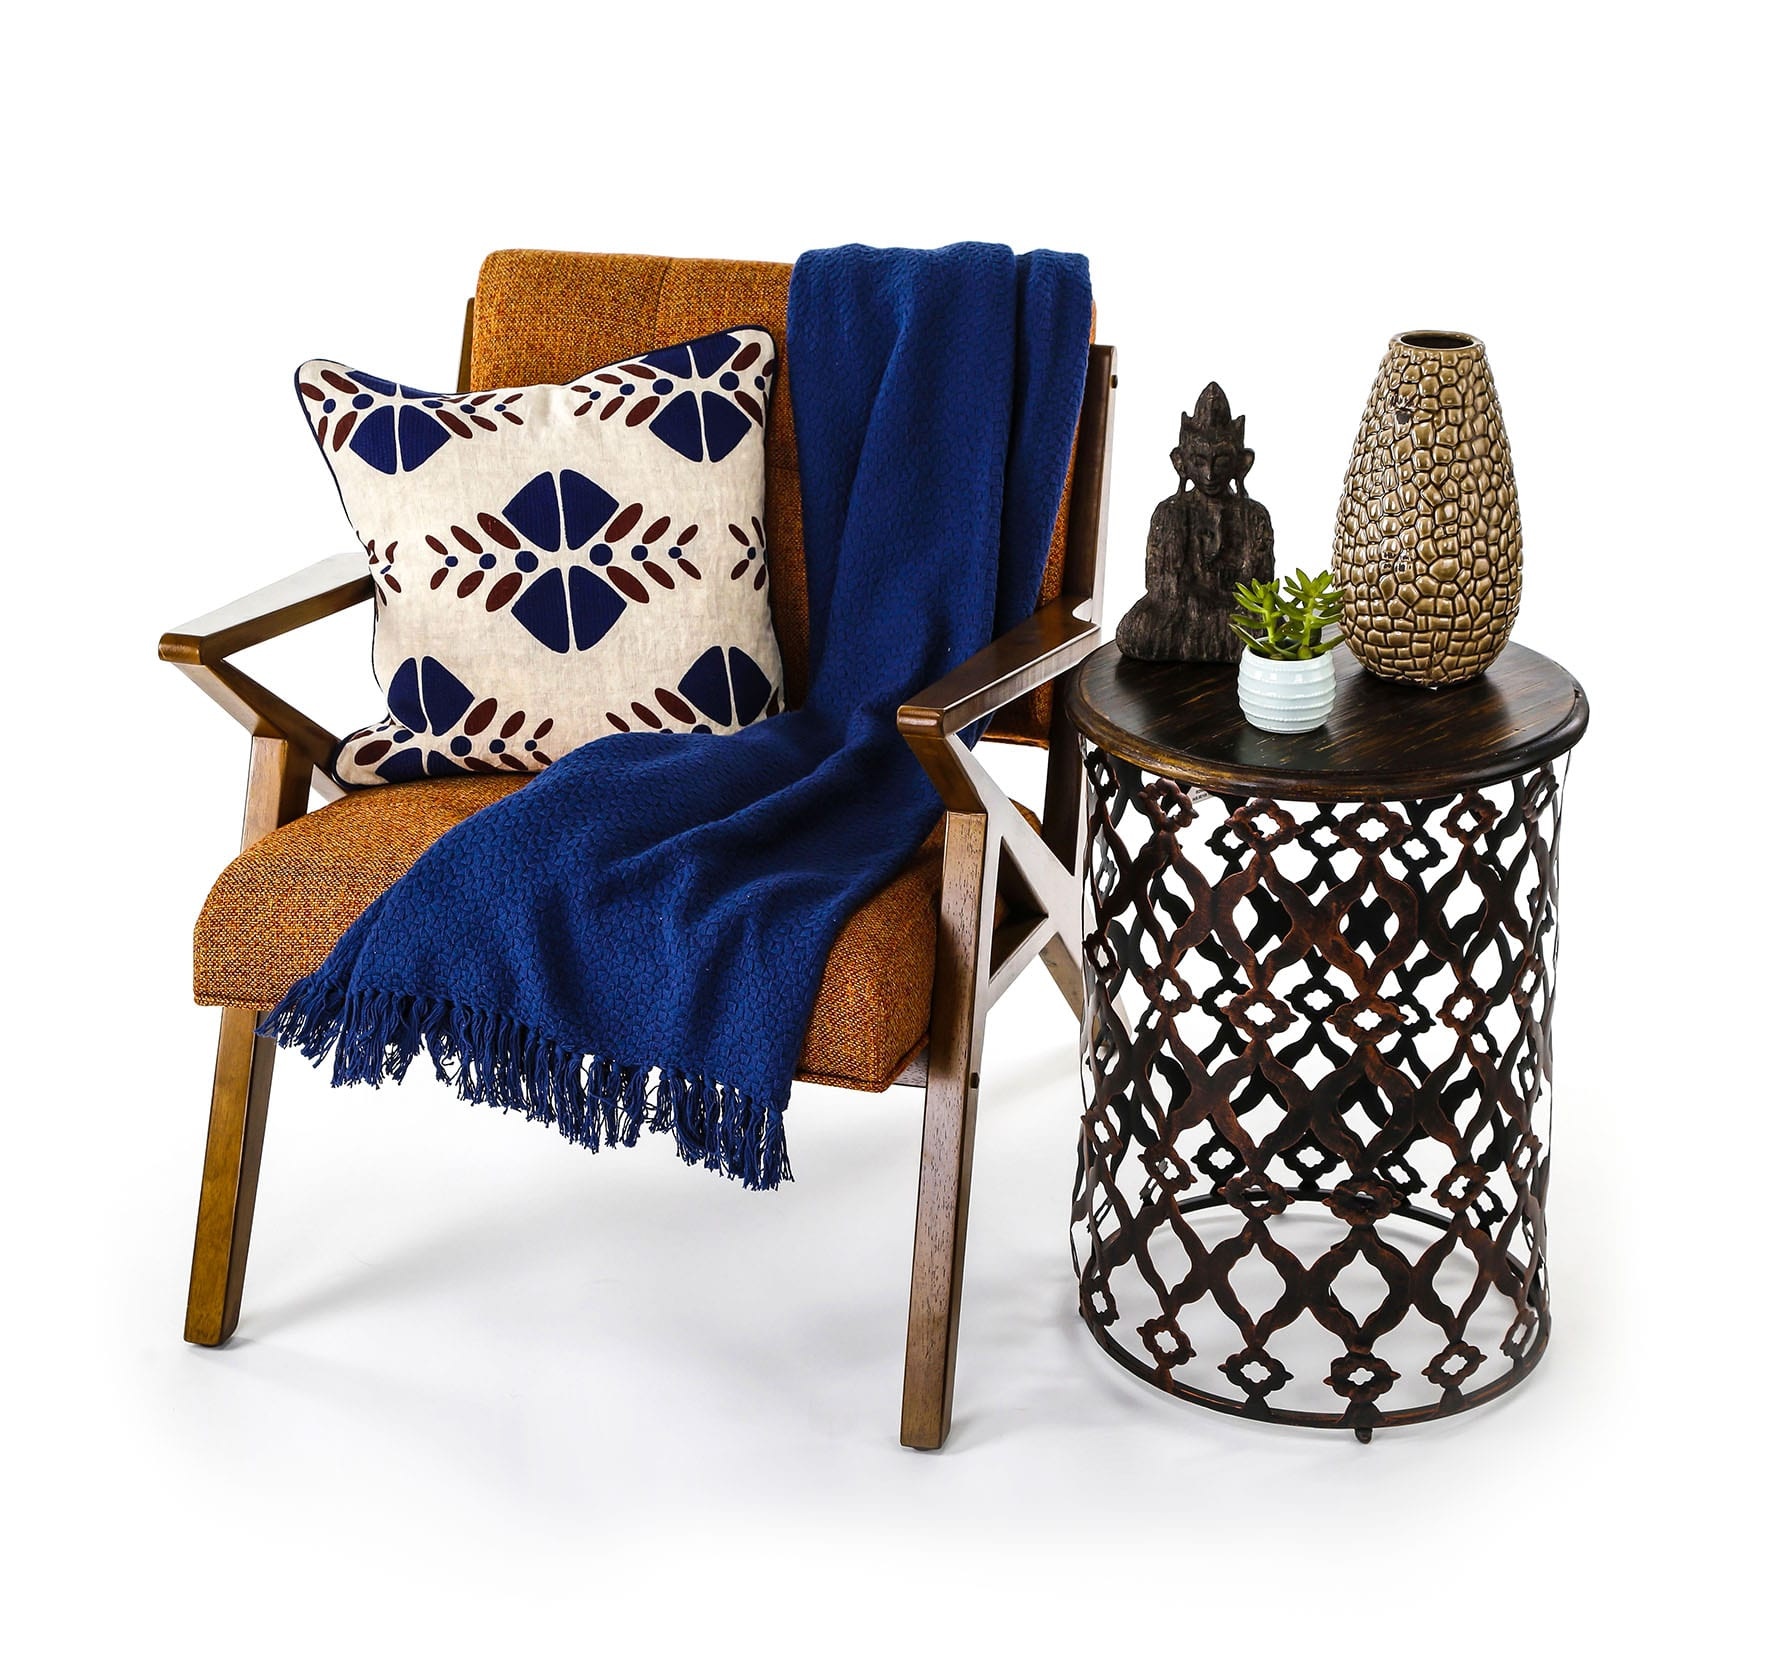 Home & Decor product photography - Chair and Sidetable Example